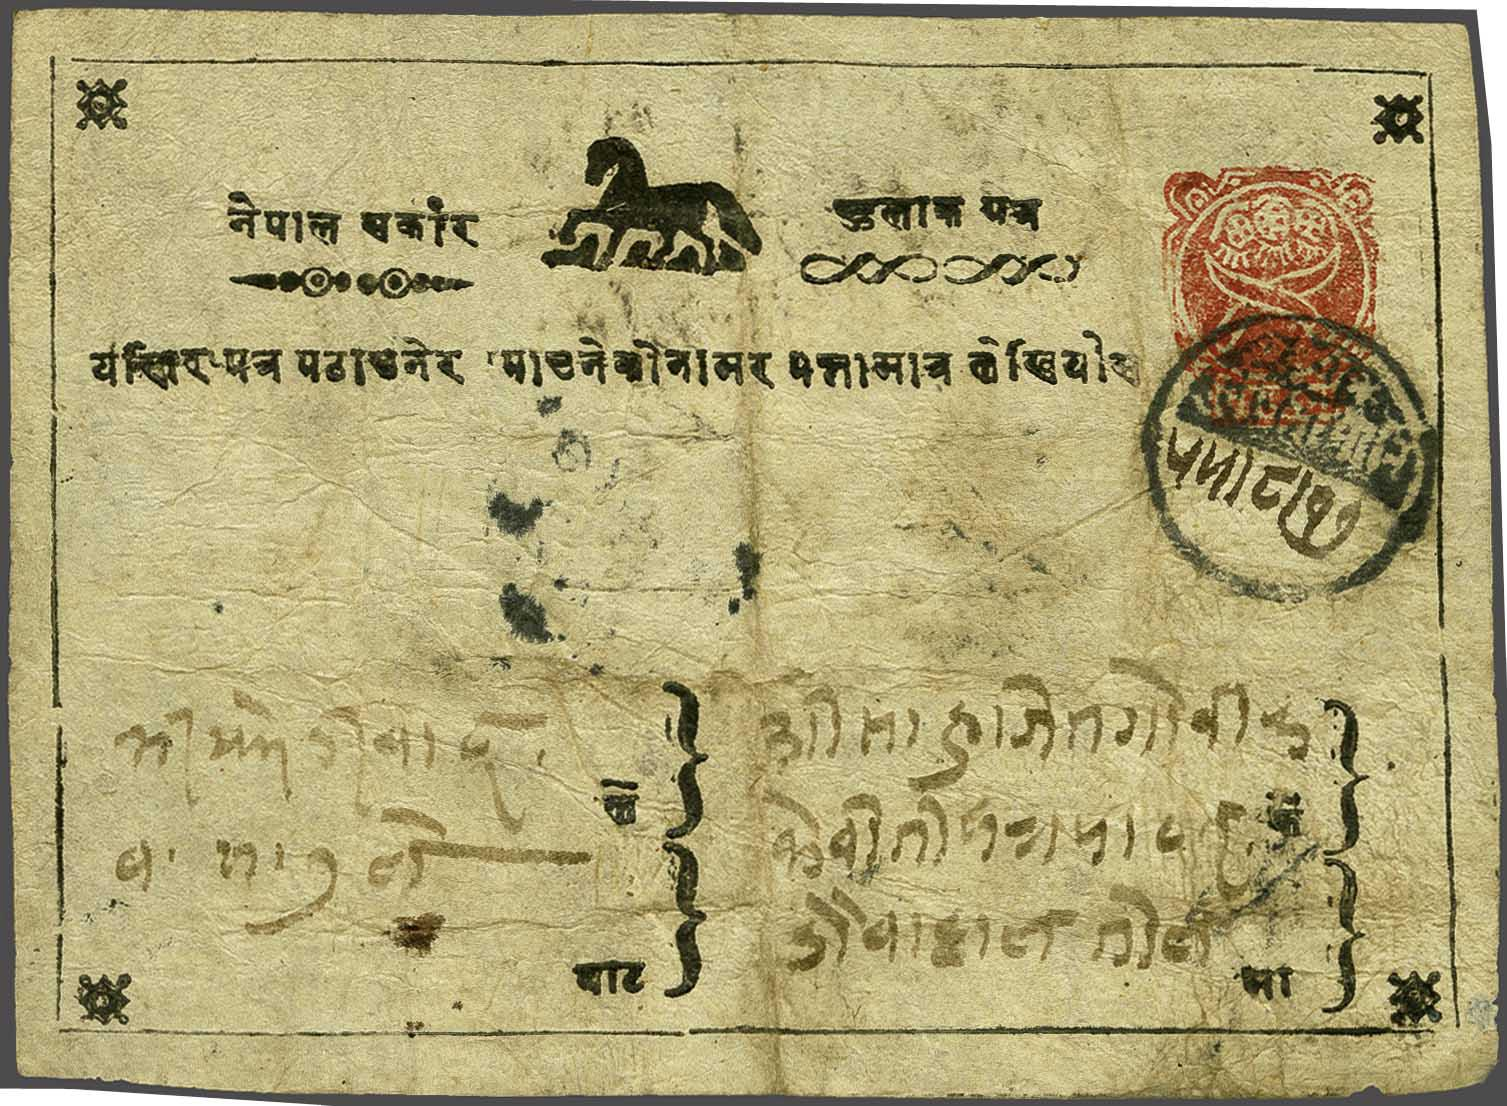 Lot 18 - Great Britain and former colonies Nepal -  Corinphila Veilingen Auction 245-246 Day 1 - Nepal - The Dick van der Wateren Collection, Foreign countries - Single lots, Picture postcards